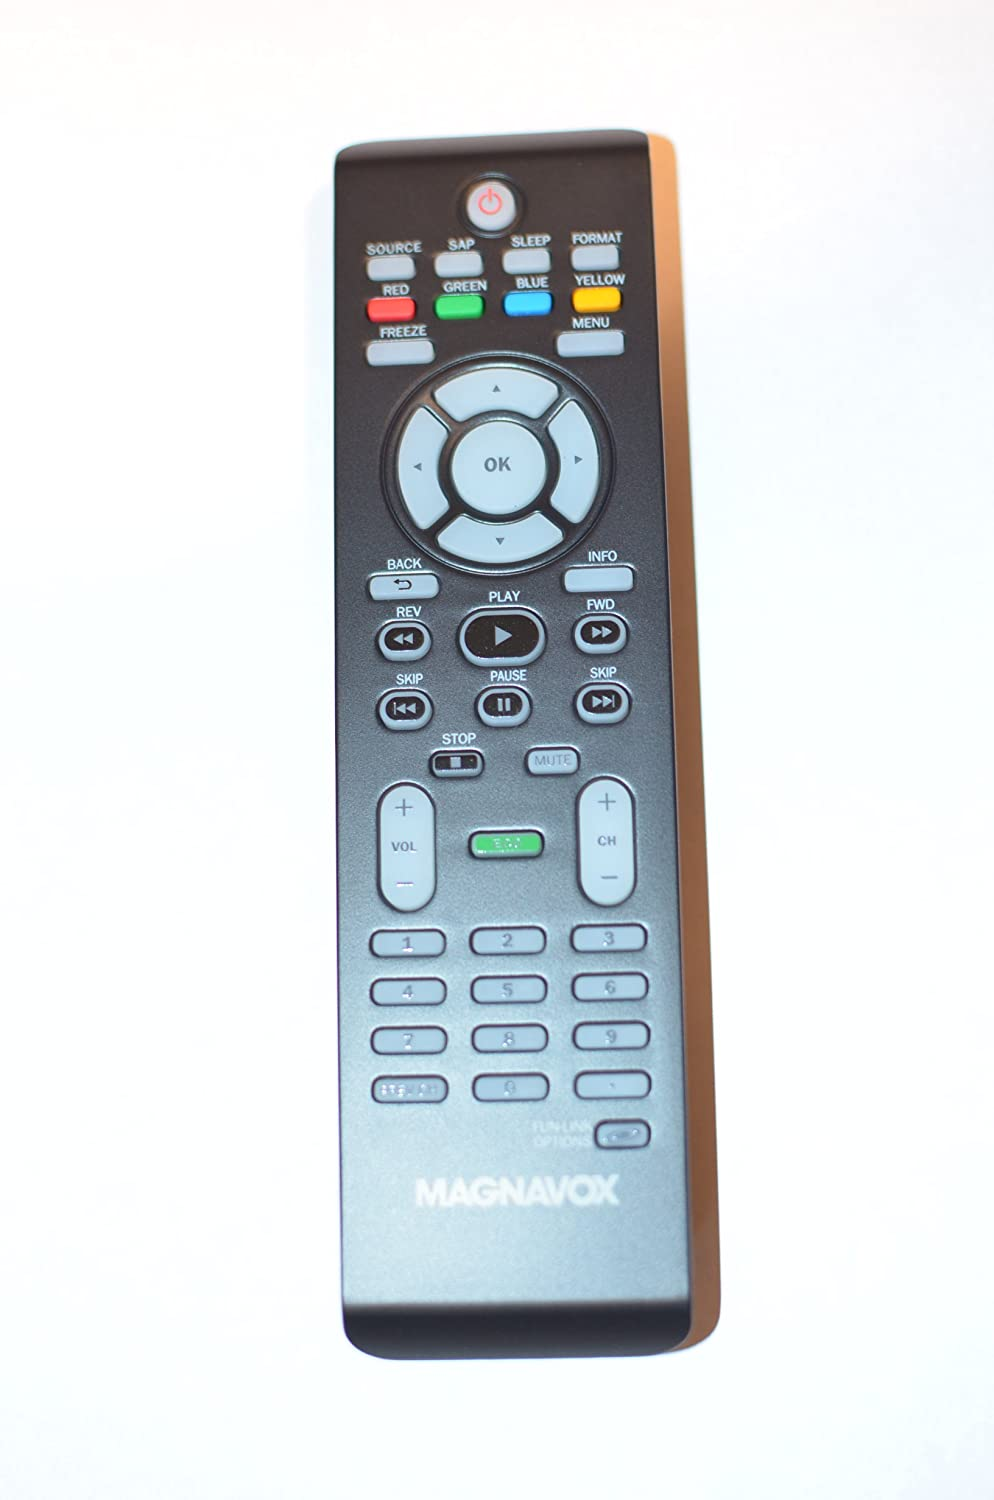 Magnavox LCD TV Remote Control NF804UD NF805UD Supplied with models: 19ME360B 19MF330B 22ME360B 22MF330B 26MF330B 32MF330B 40MF4